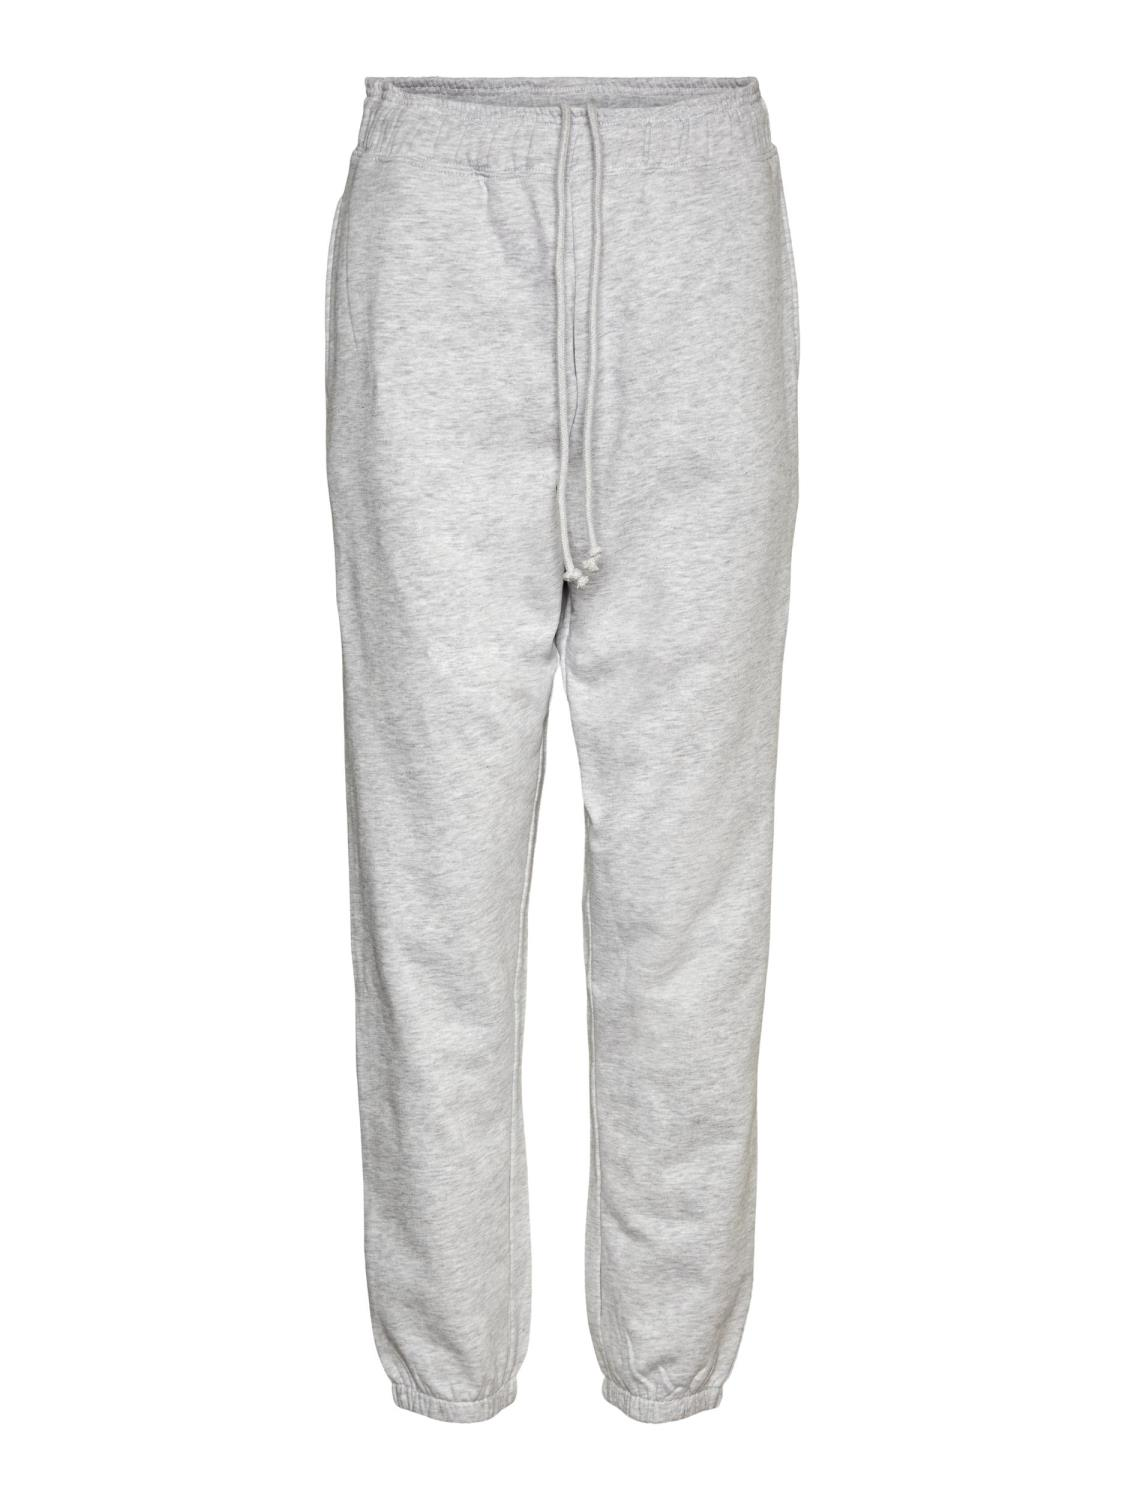 VMODEZ HW SWEAT PANTS Light Grey